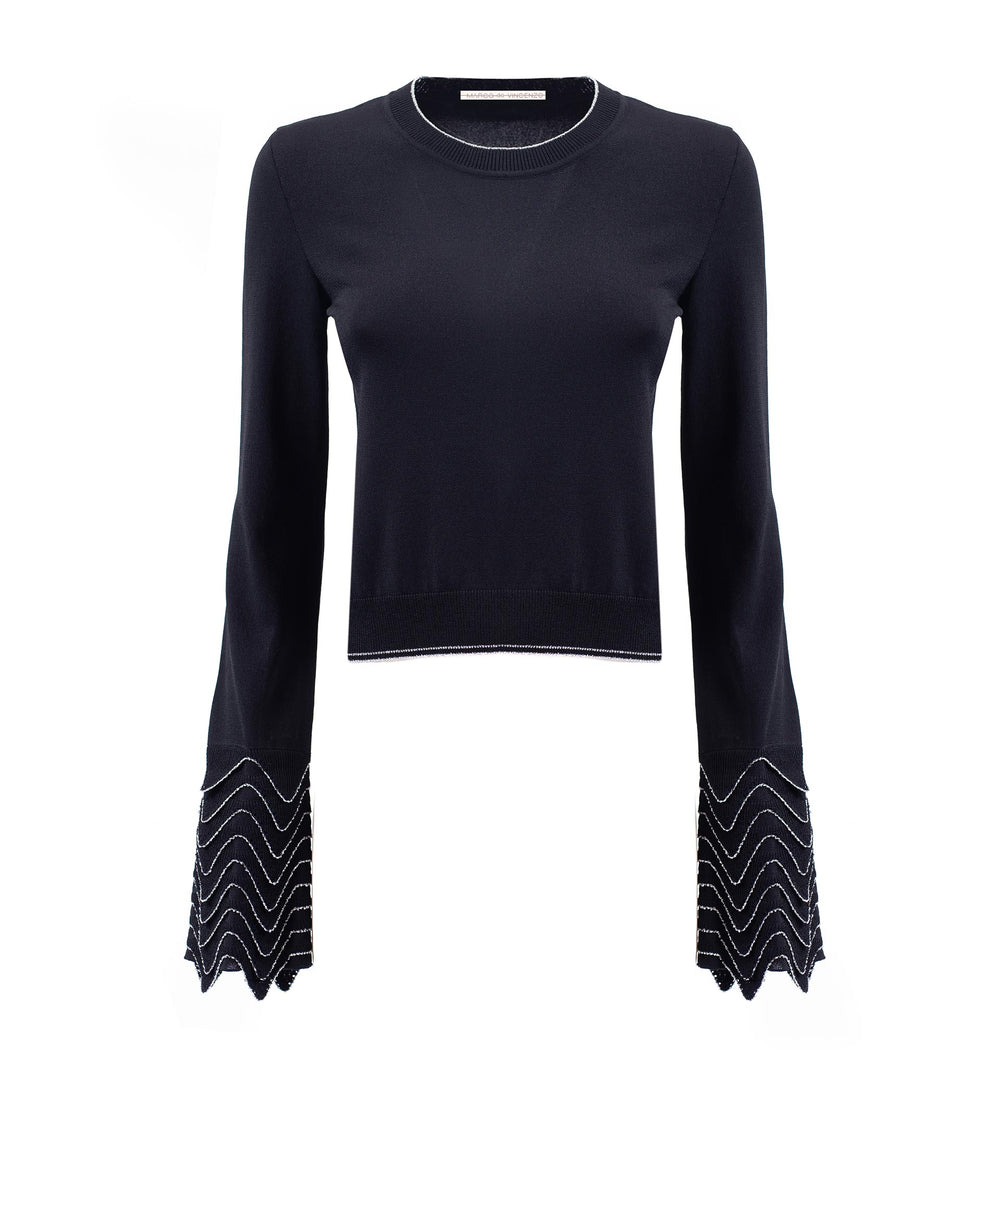 Pullover with wave motif sleeves